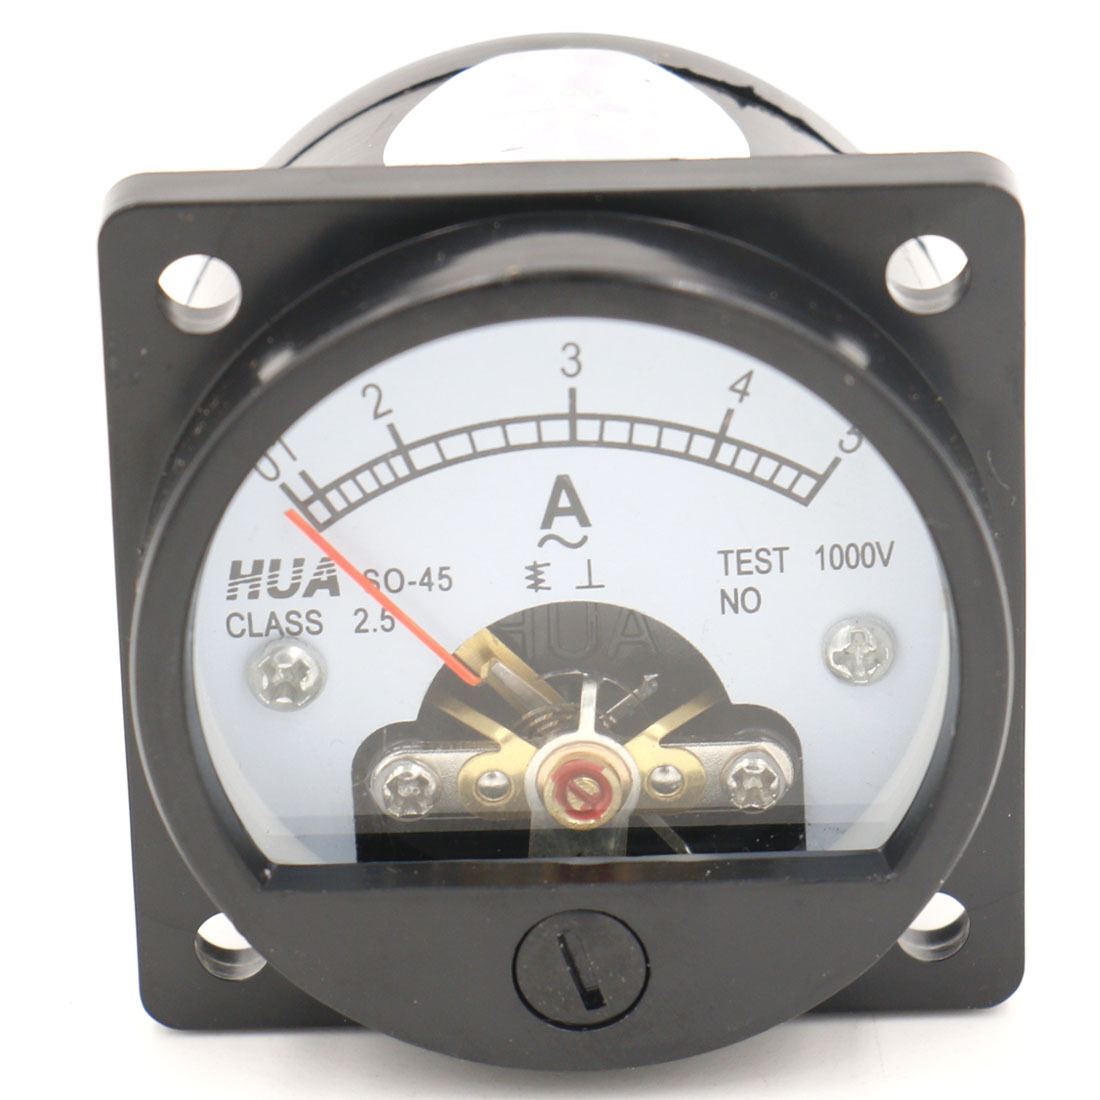 Round Analog Panel Meters : Ammeter so class accuracy ac a round analog